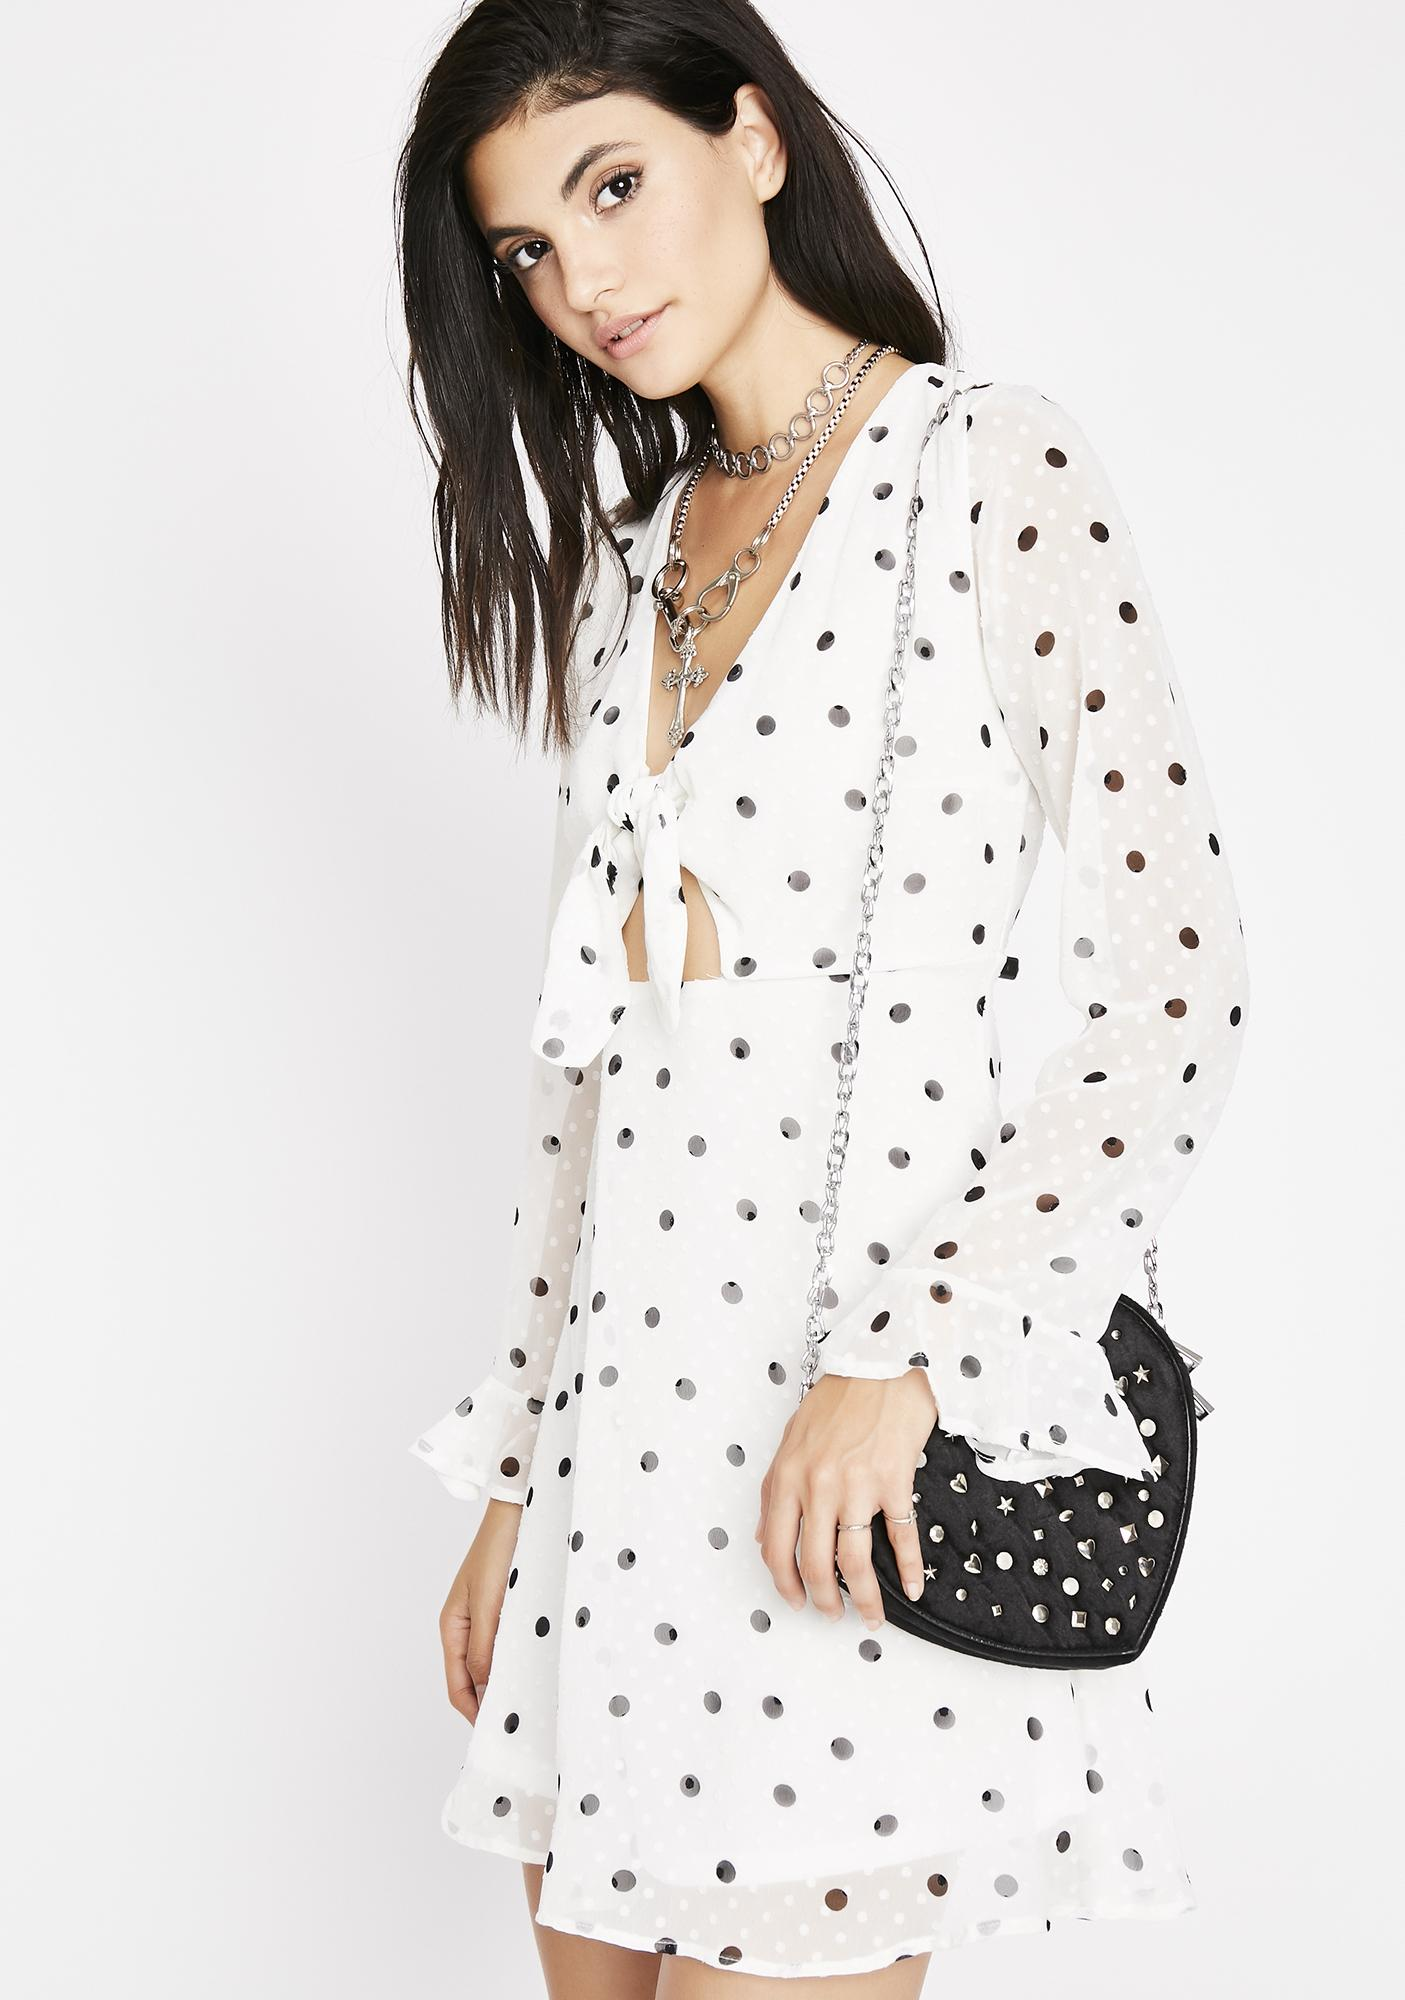 Pure Center Stage Polka Dot Dress